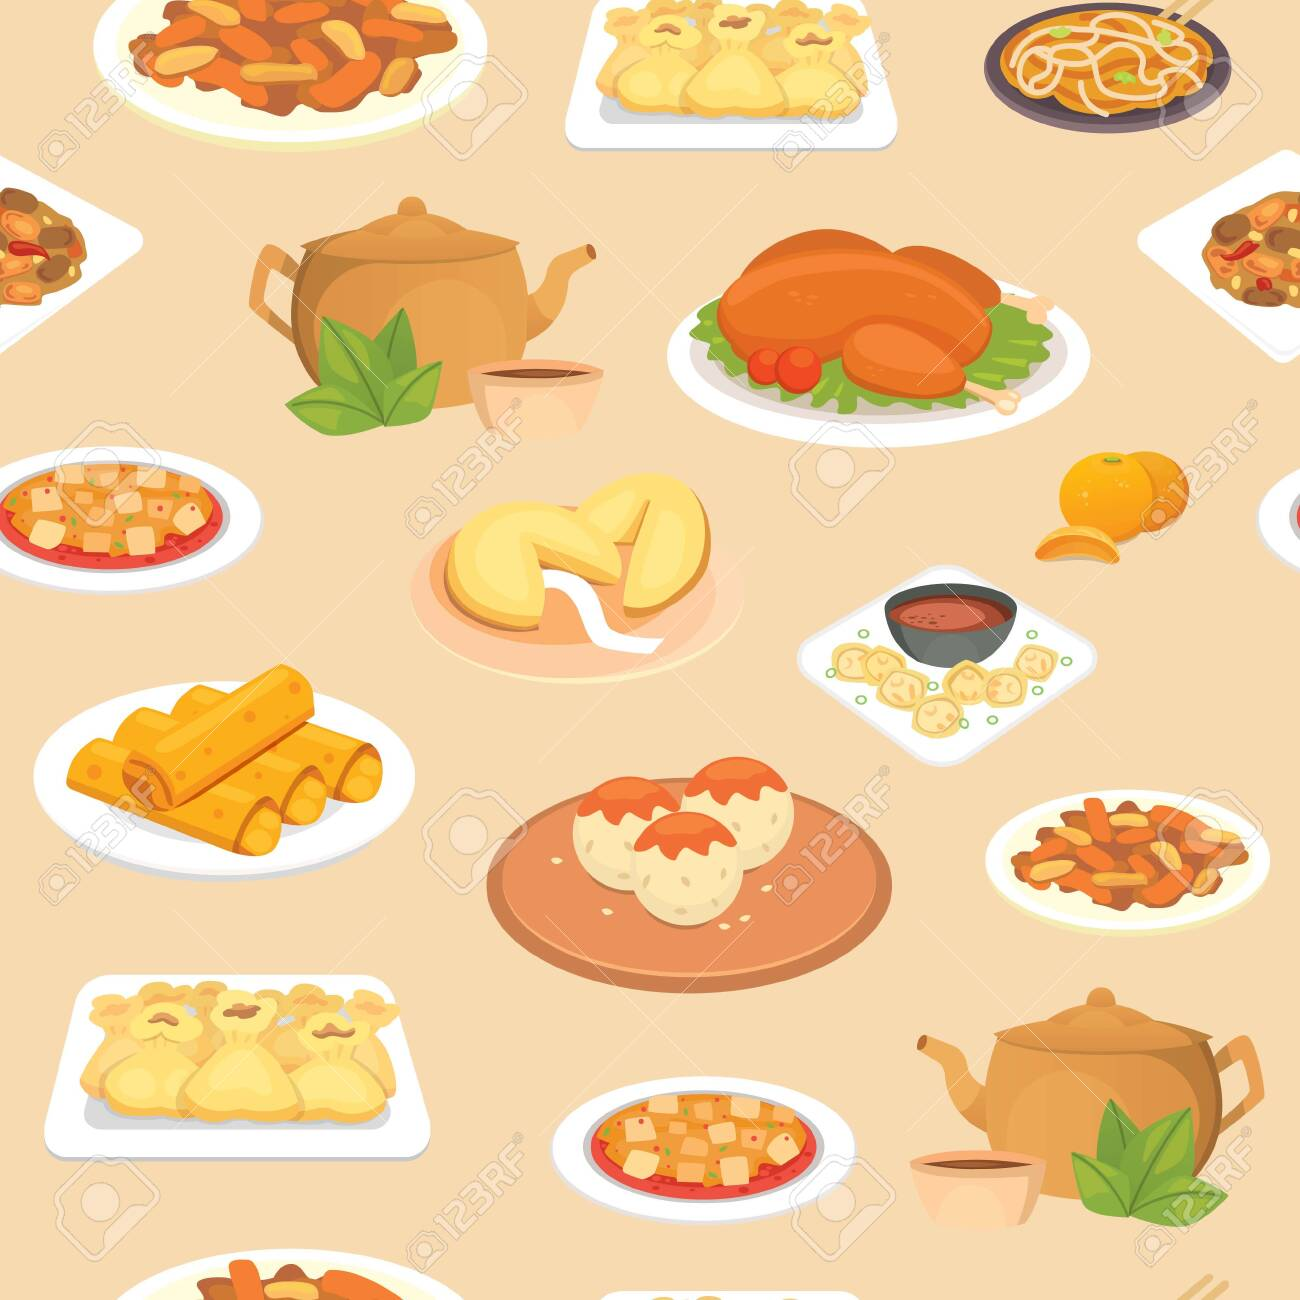 Chinese Food Oriental Street Restaurant Or Homemade Food Seamless Royalty Free Cliparts Vectors And Stock Illustration Image 143263357